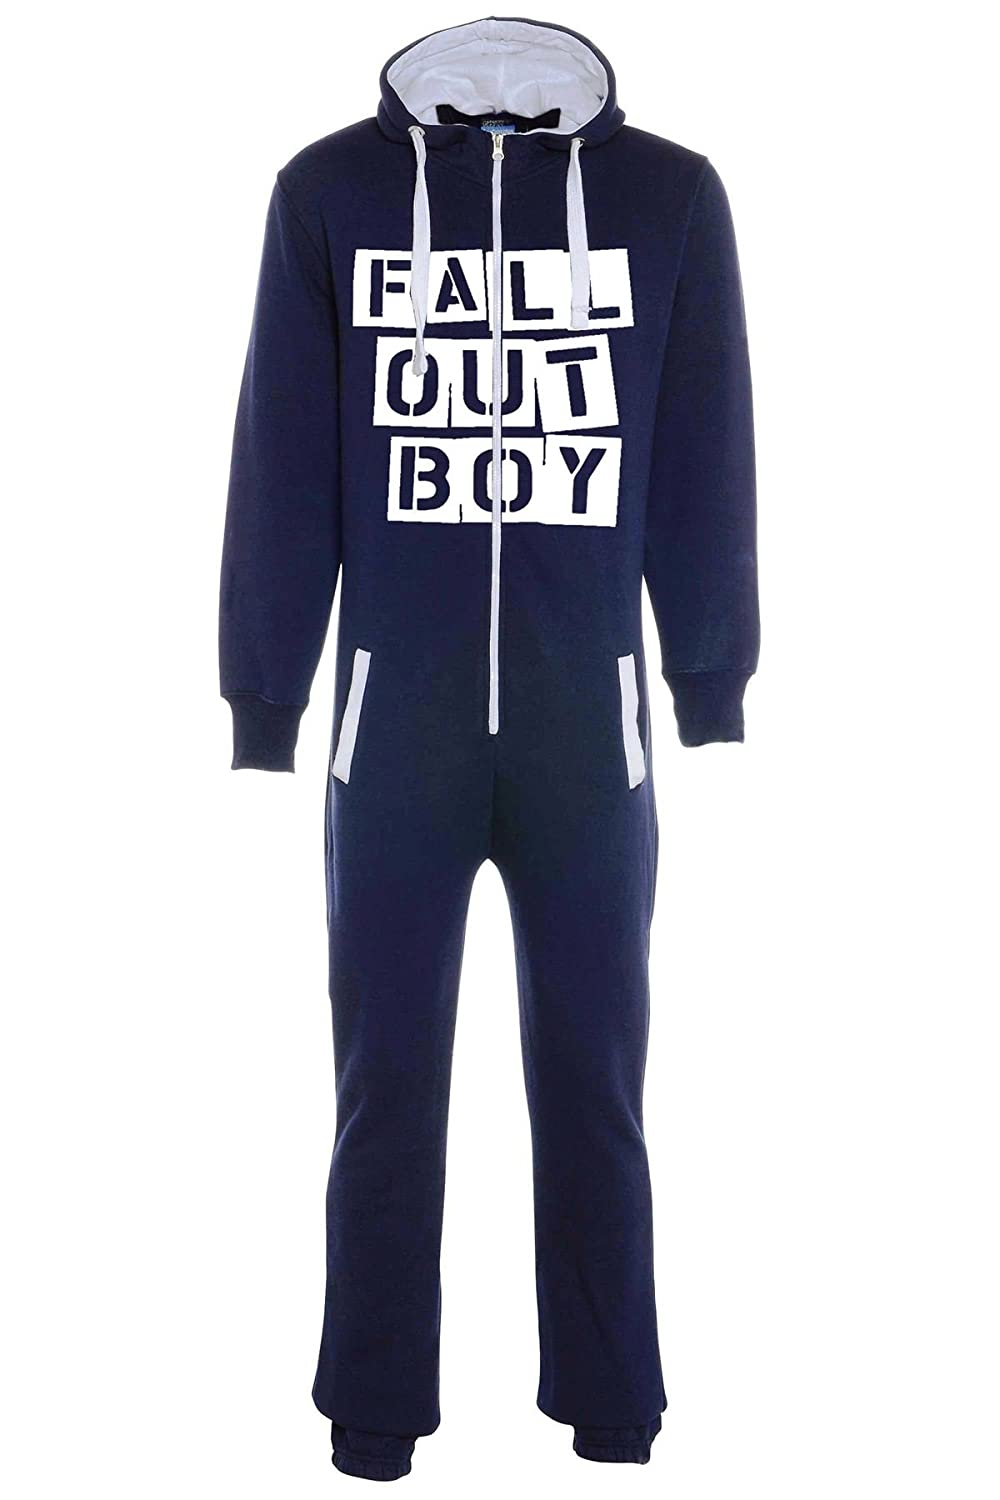 aejays Unisex Fall Out Boy Printed Onsie Color Navy Blue Size S PAK MAN LTD